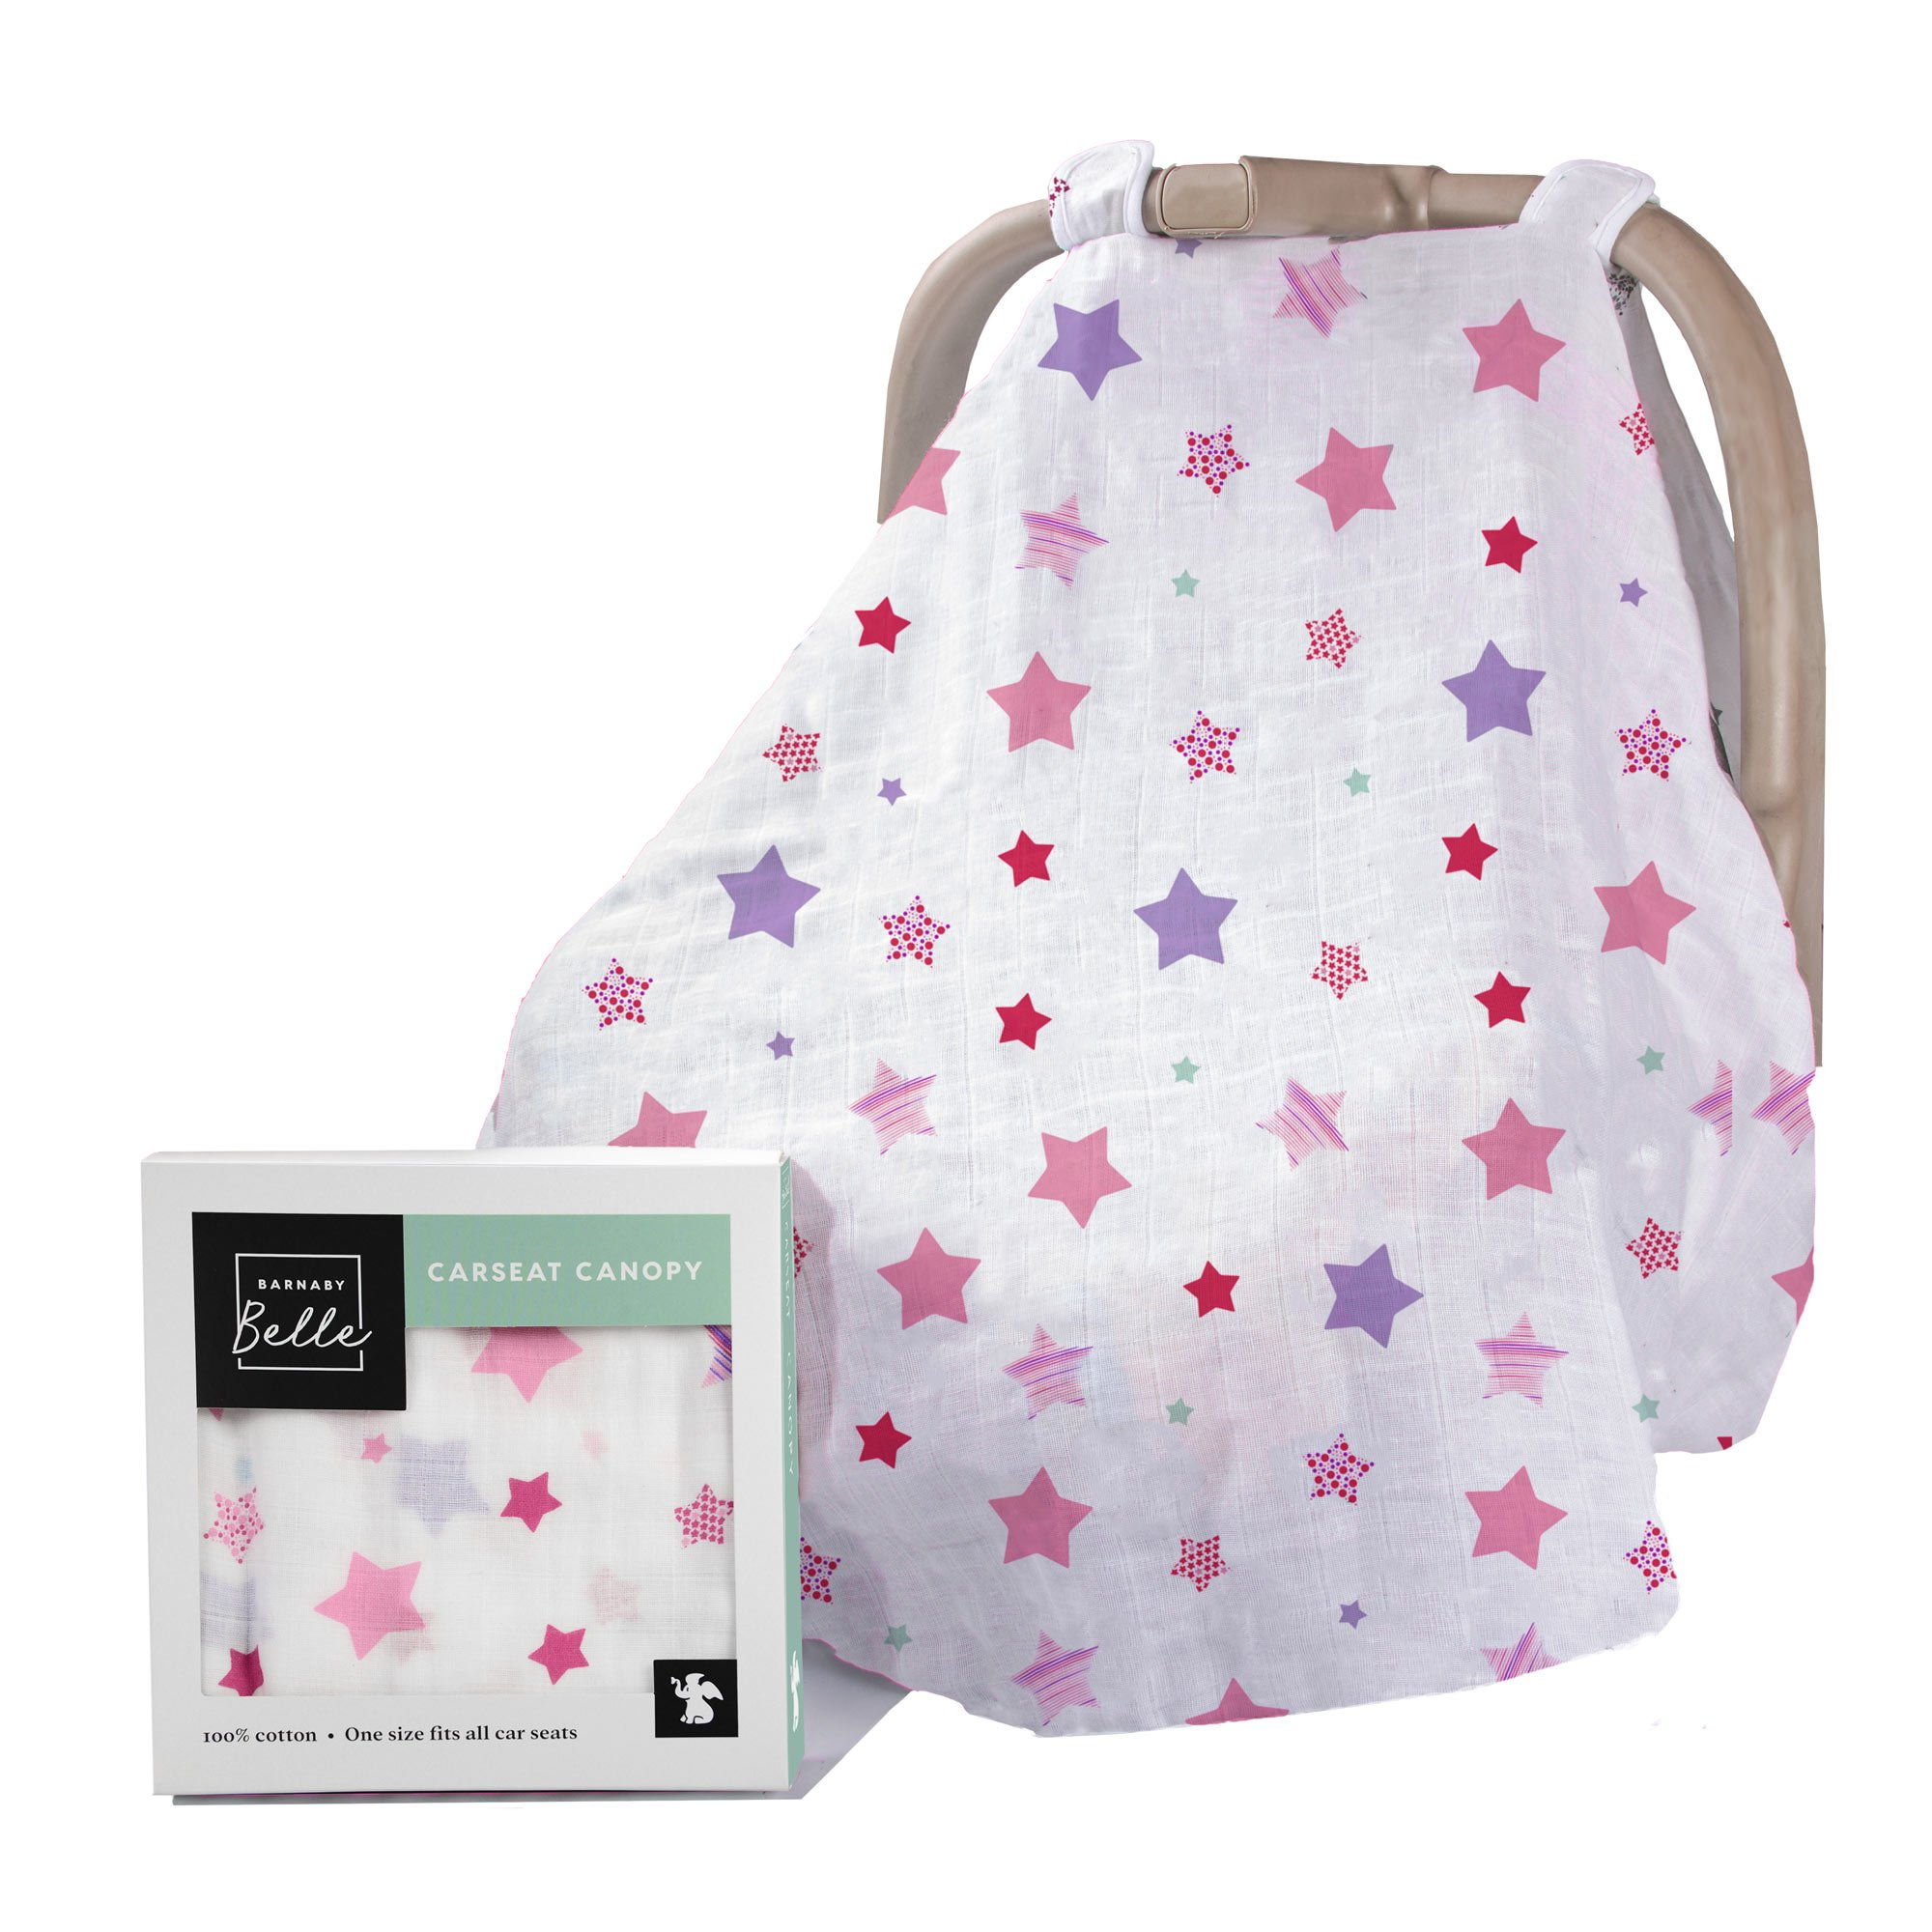 Barnaby Belle 'Pink' Baby Car Seat Covers, Girls or Boys Infant Carseat Canopy Cover